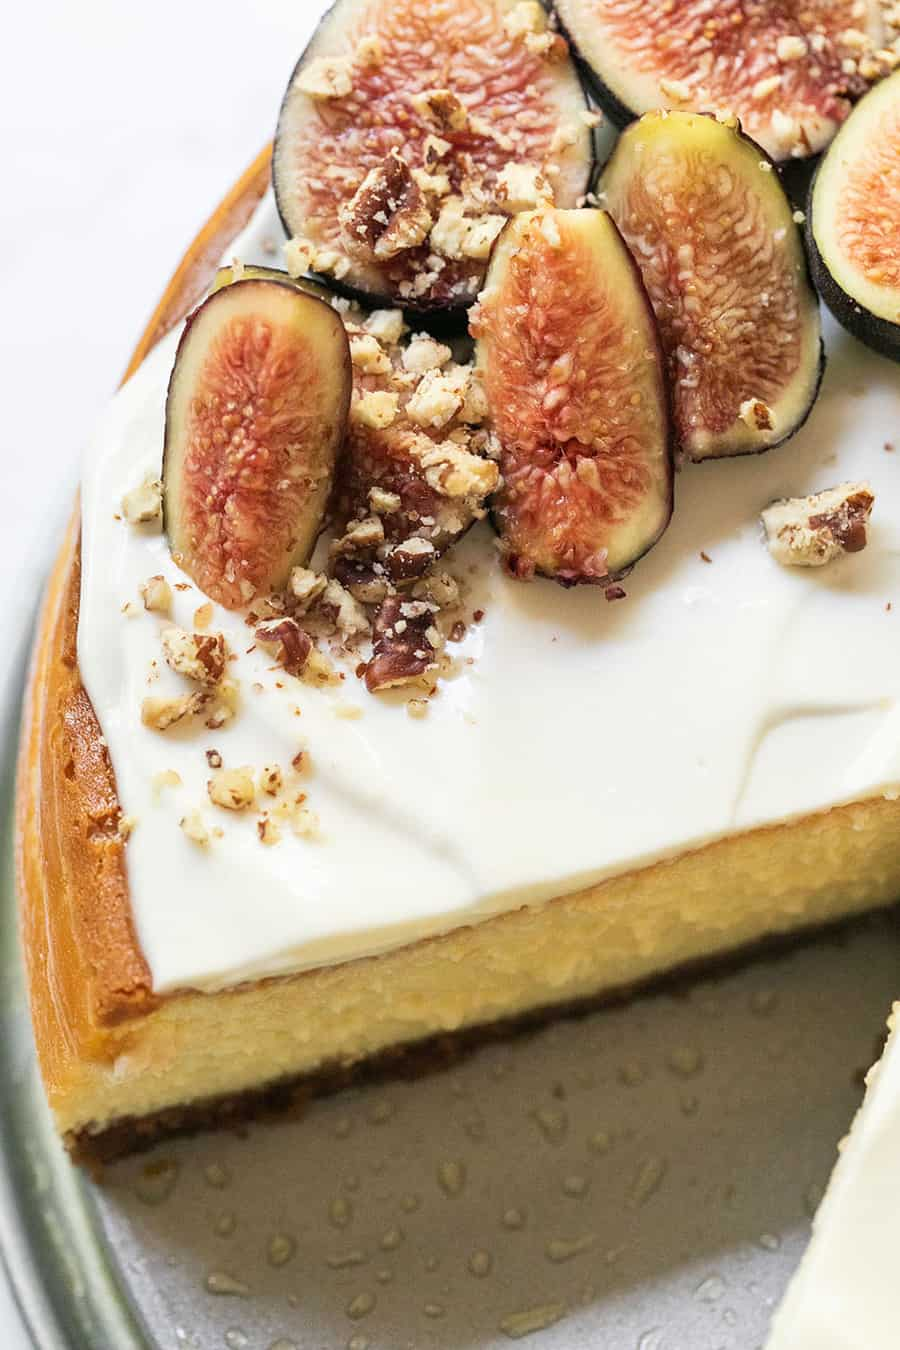 Figs on top of a cheesecake